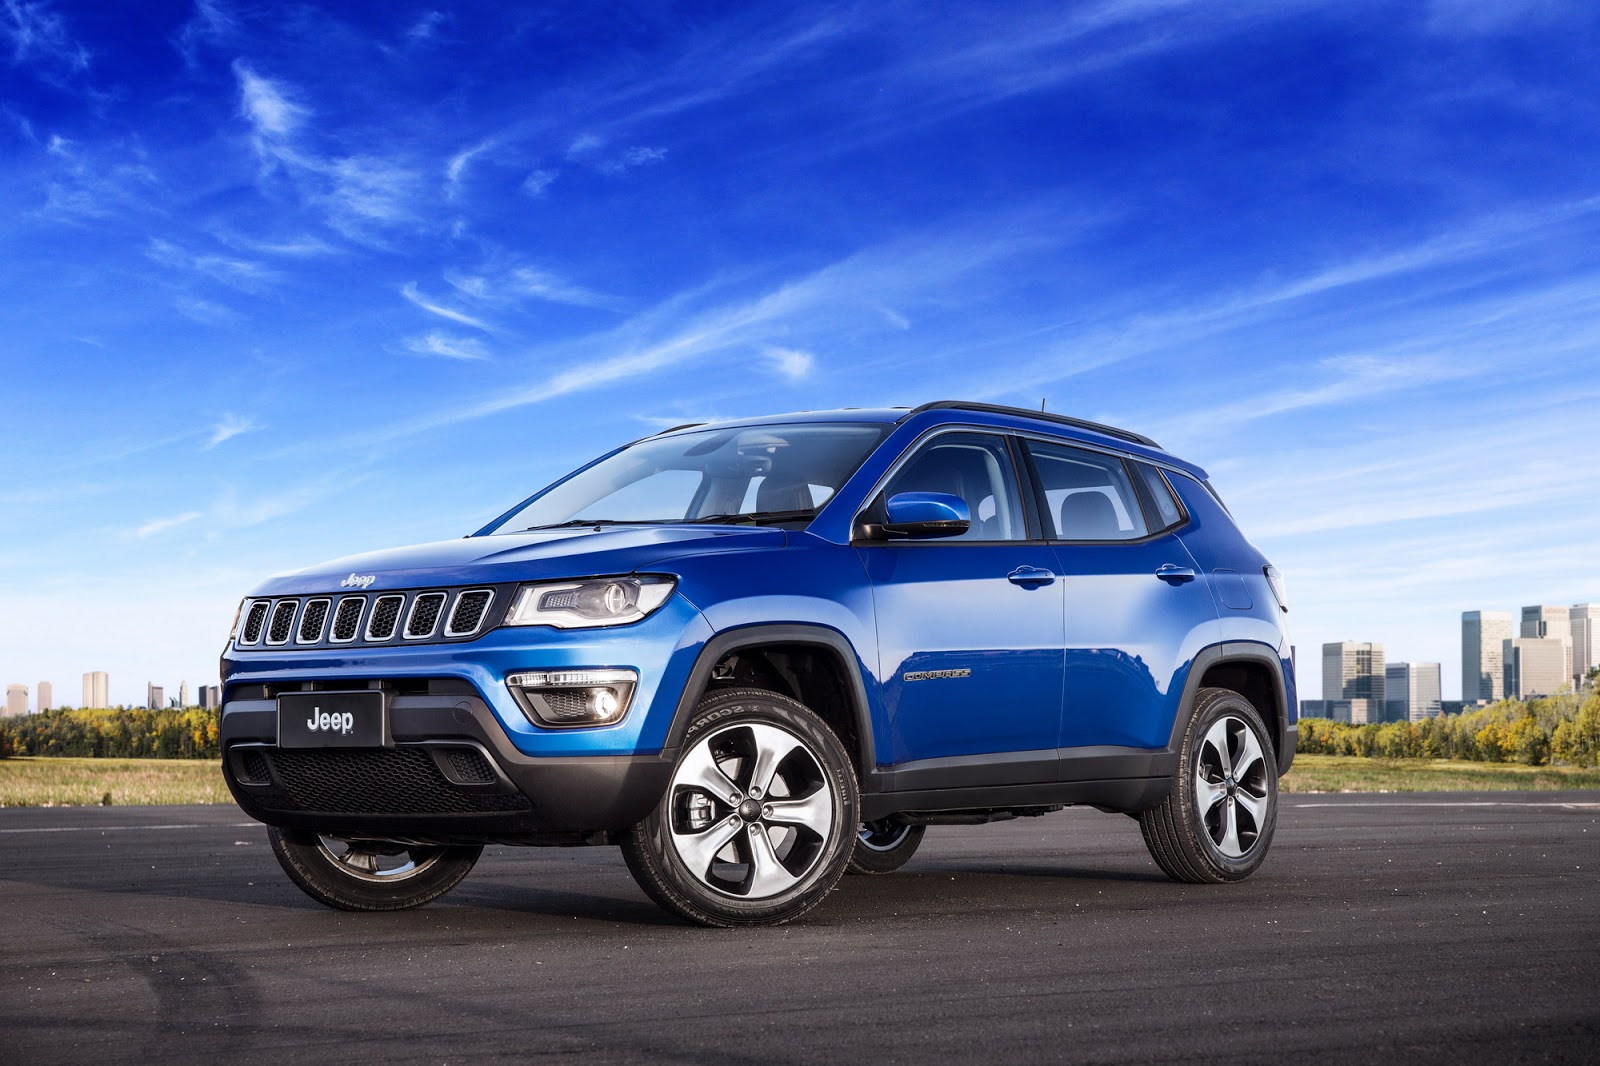 new jeep compass clears euro ncap crash tests with flying colors autoevolution. Black Bedroom Furniture Sets. Home Design Ideas